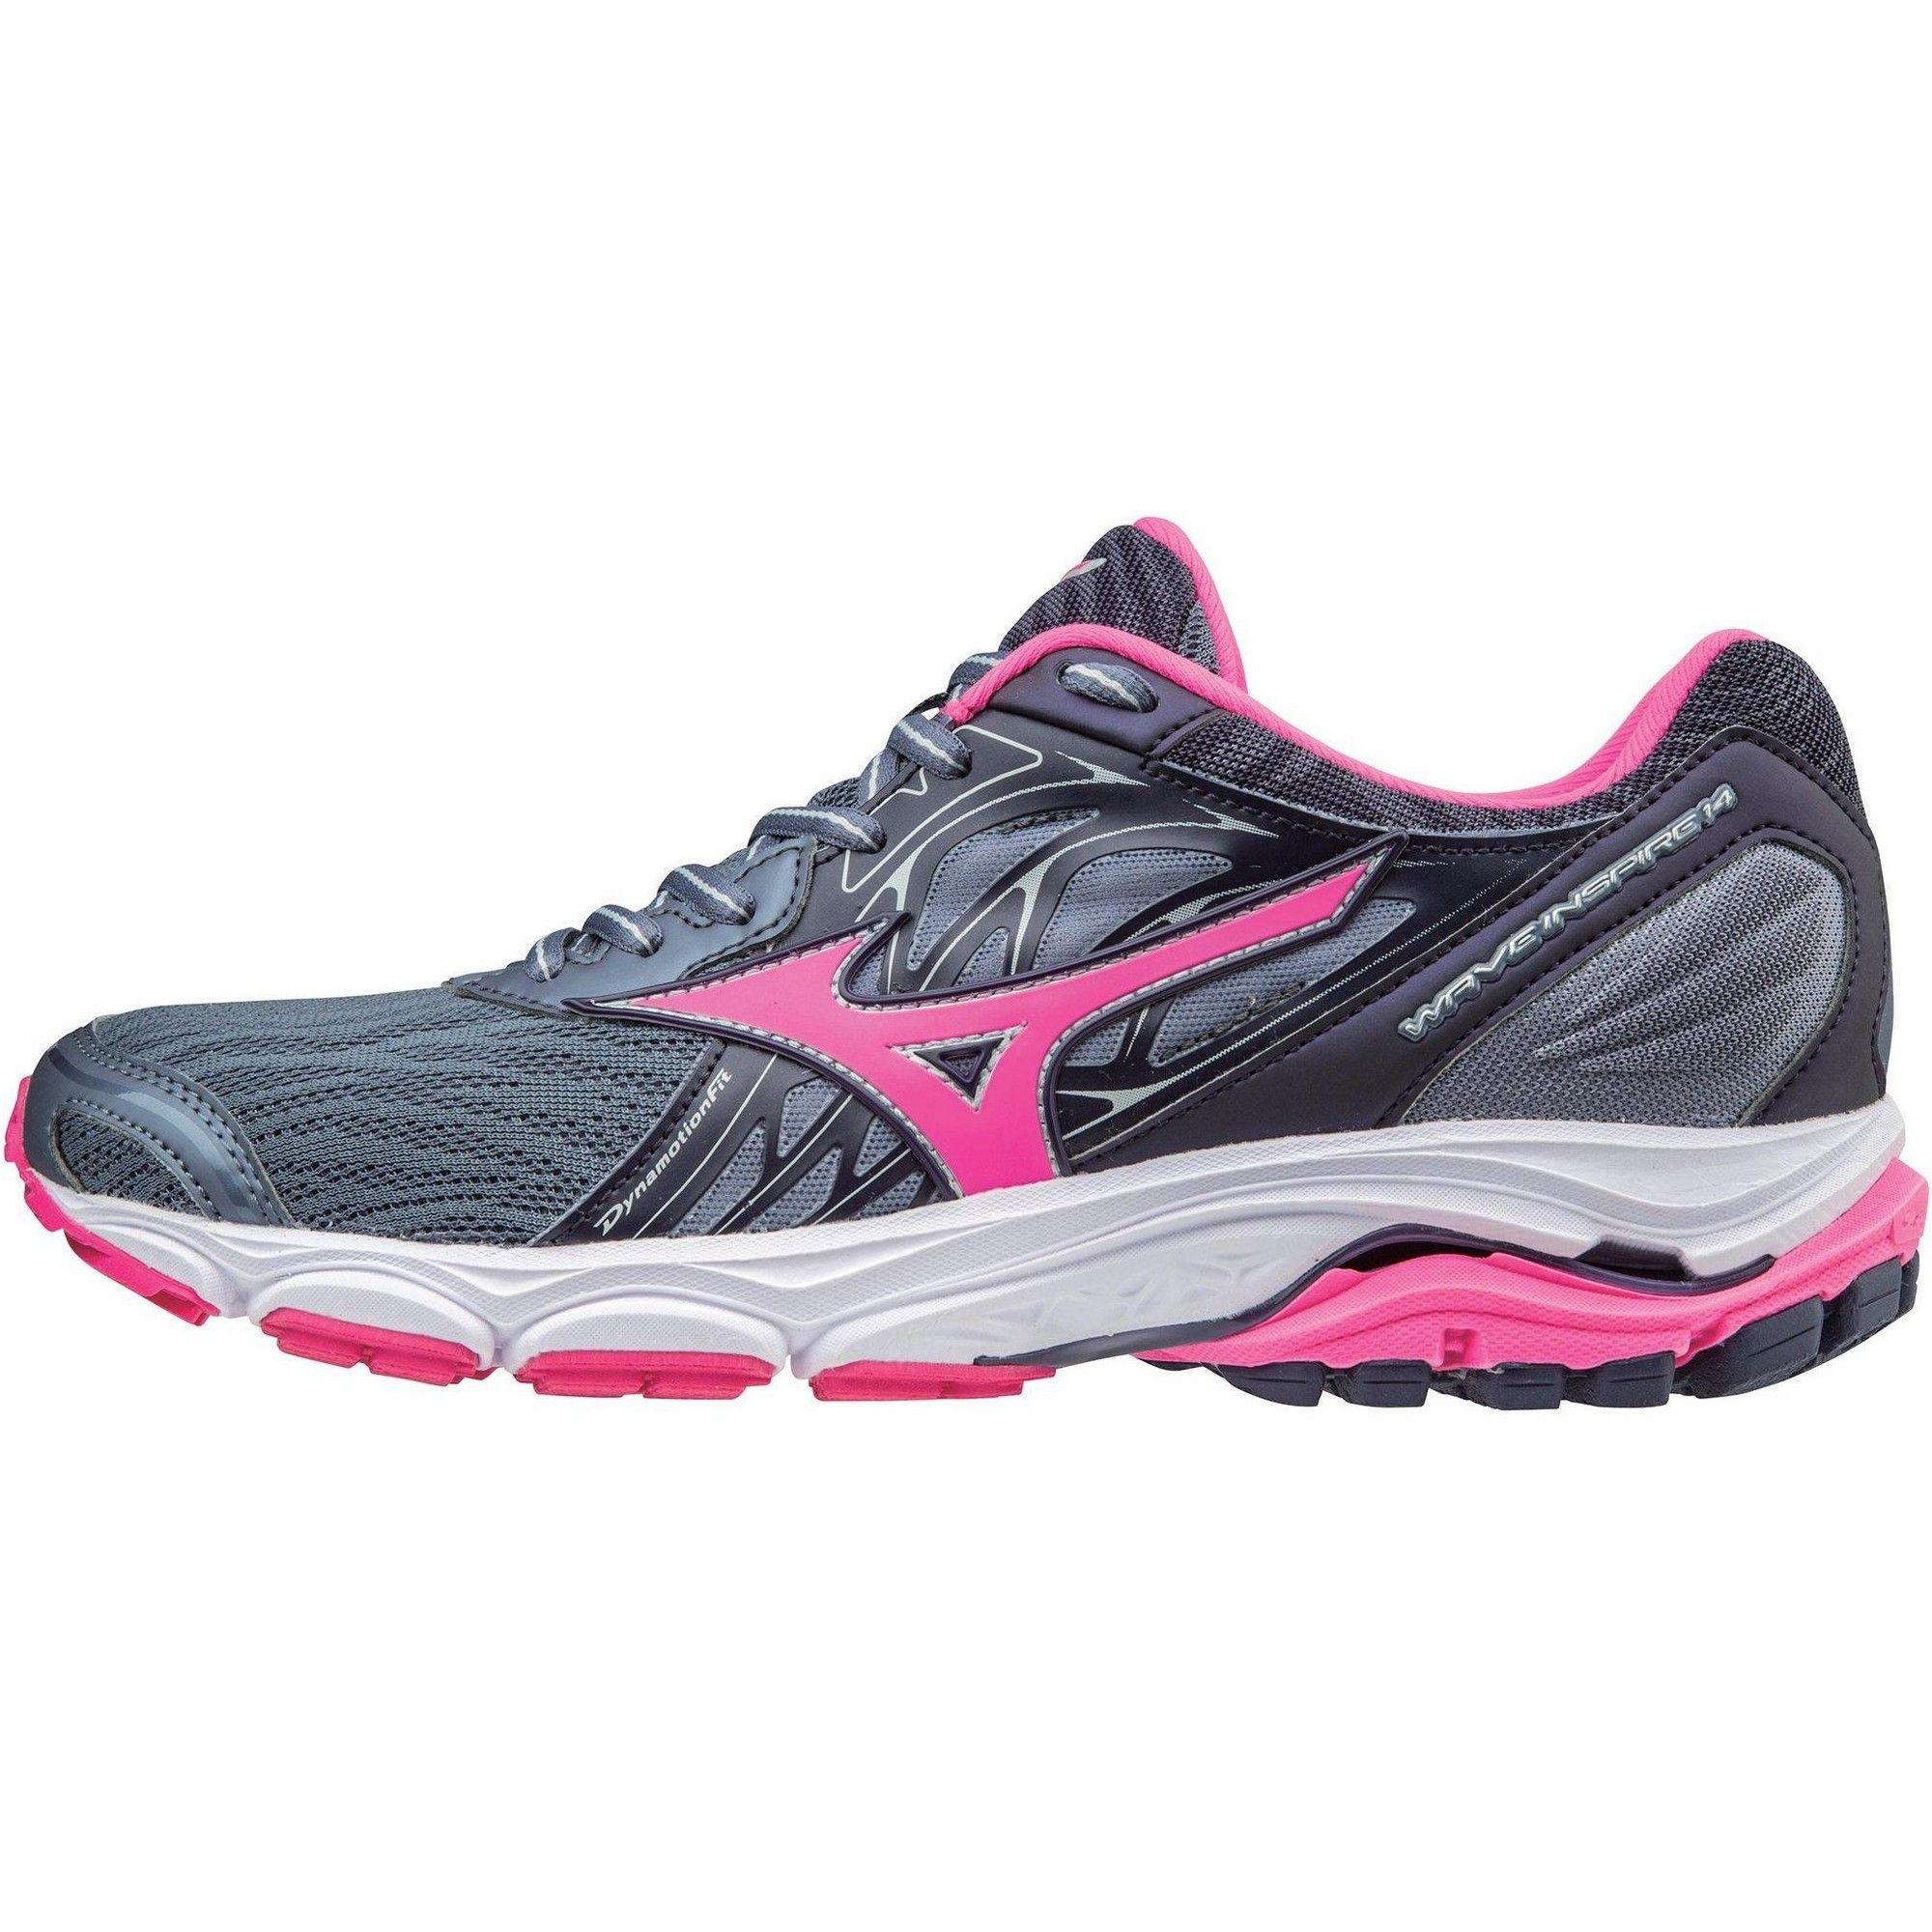 Mizuno Women S Wave Inspire 14 Running Shoe Size 7 5 In Color Folkstone Gray Pink Glo 9f1q Womens Running Shoes Running Shoes Running Women